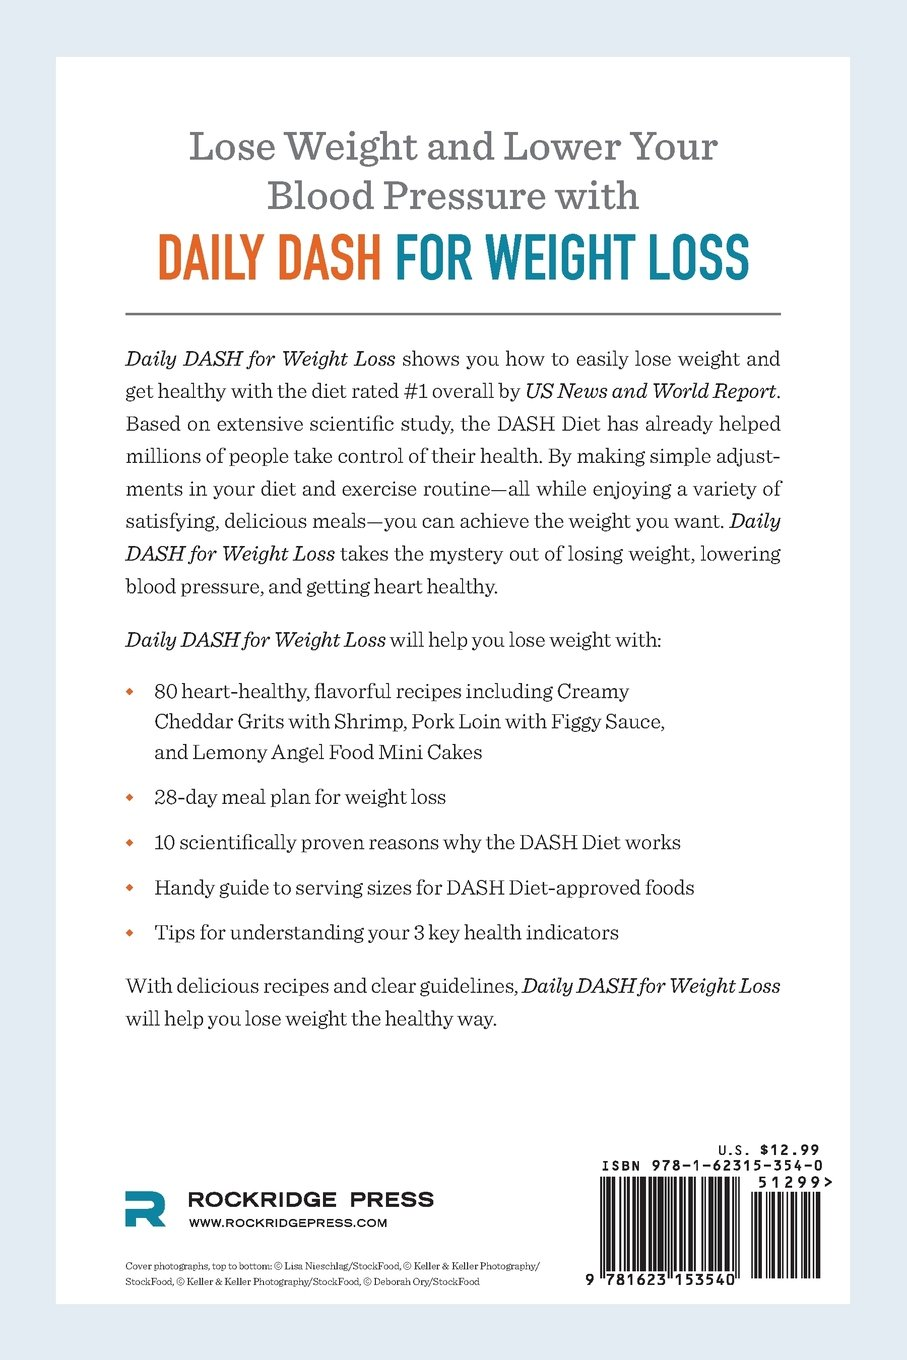 Daily dash for weight loss a day by day dash diet weight loss daily dash for weight loss a day by day dash diet weight loss plan rockridge press 9781623153540 amazon books geenschuldenfo Images